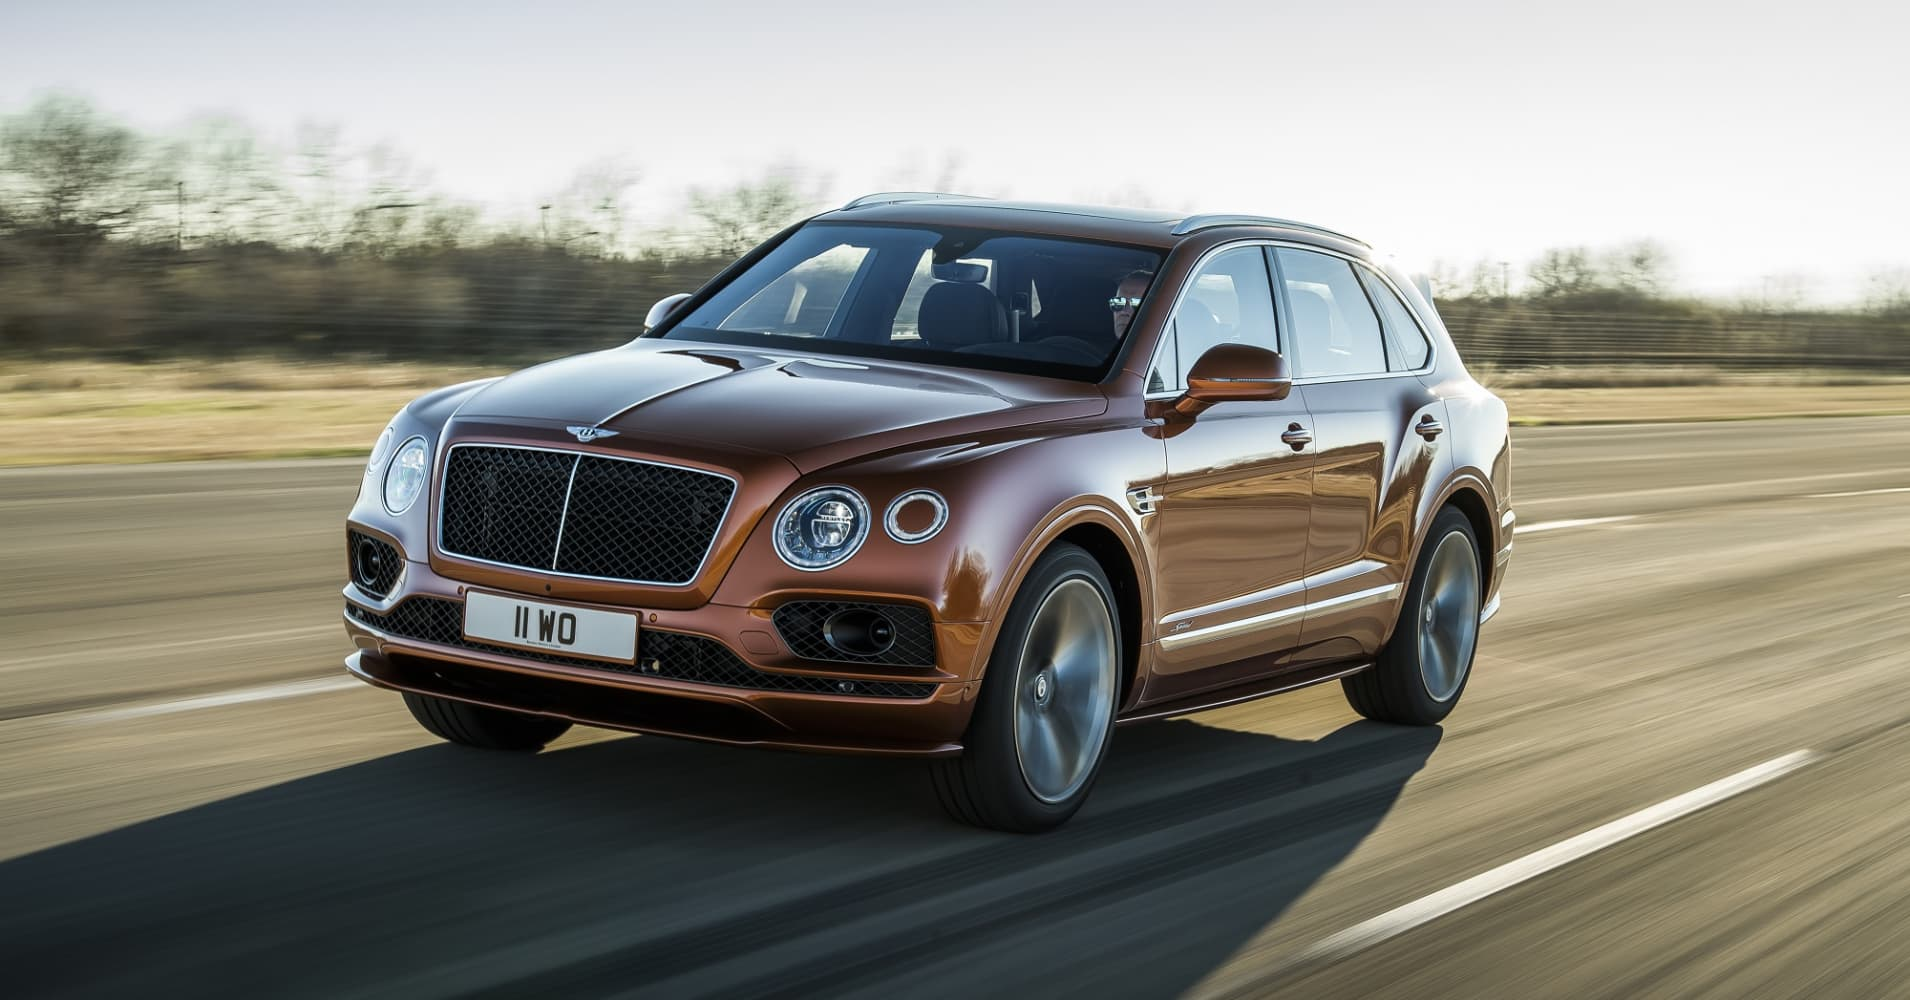 this bentley is now the world 39 s fastest suv beating out lamborghini. Black Bedroom Furniture Sets. Home Design Ideas